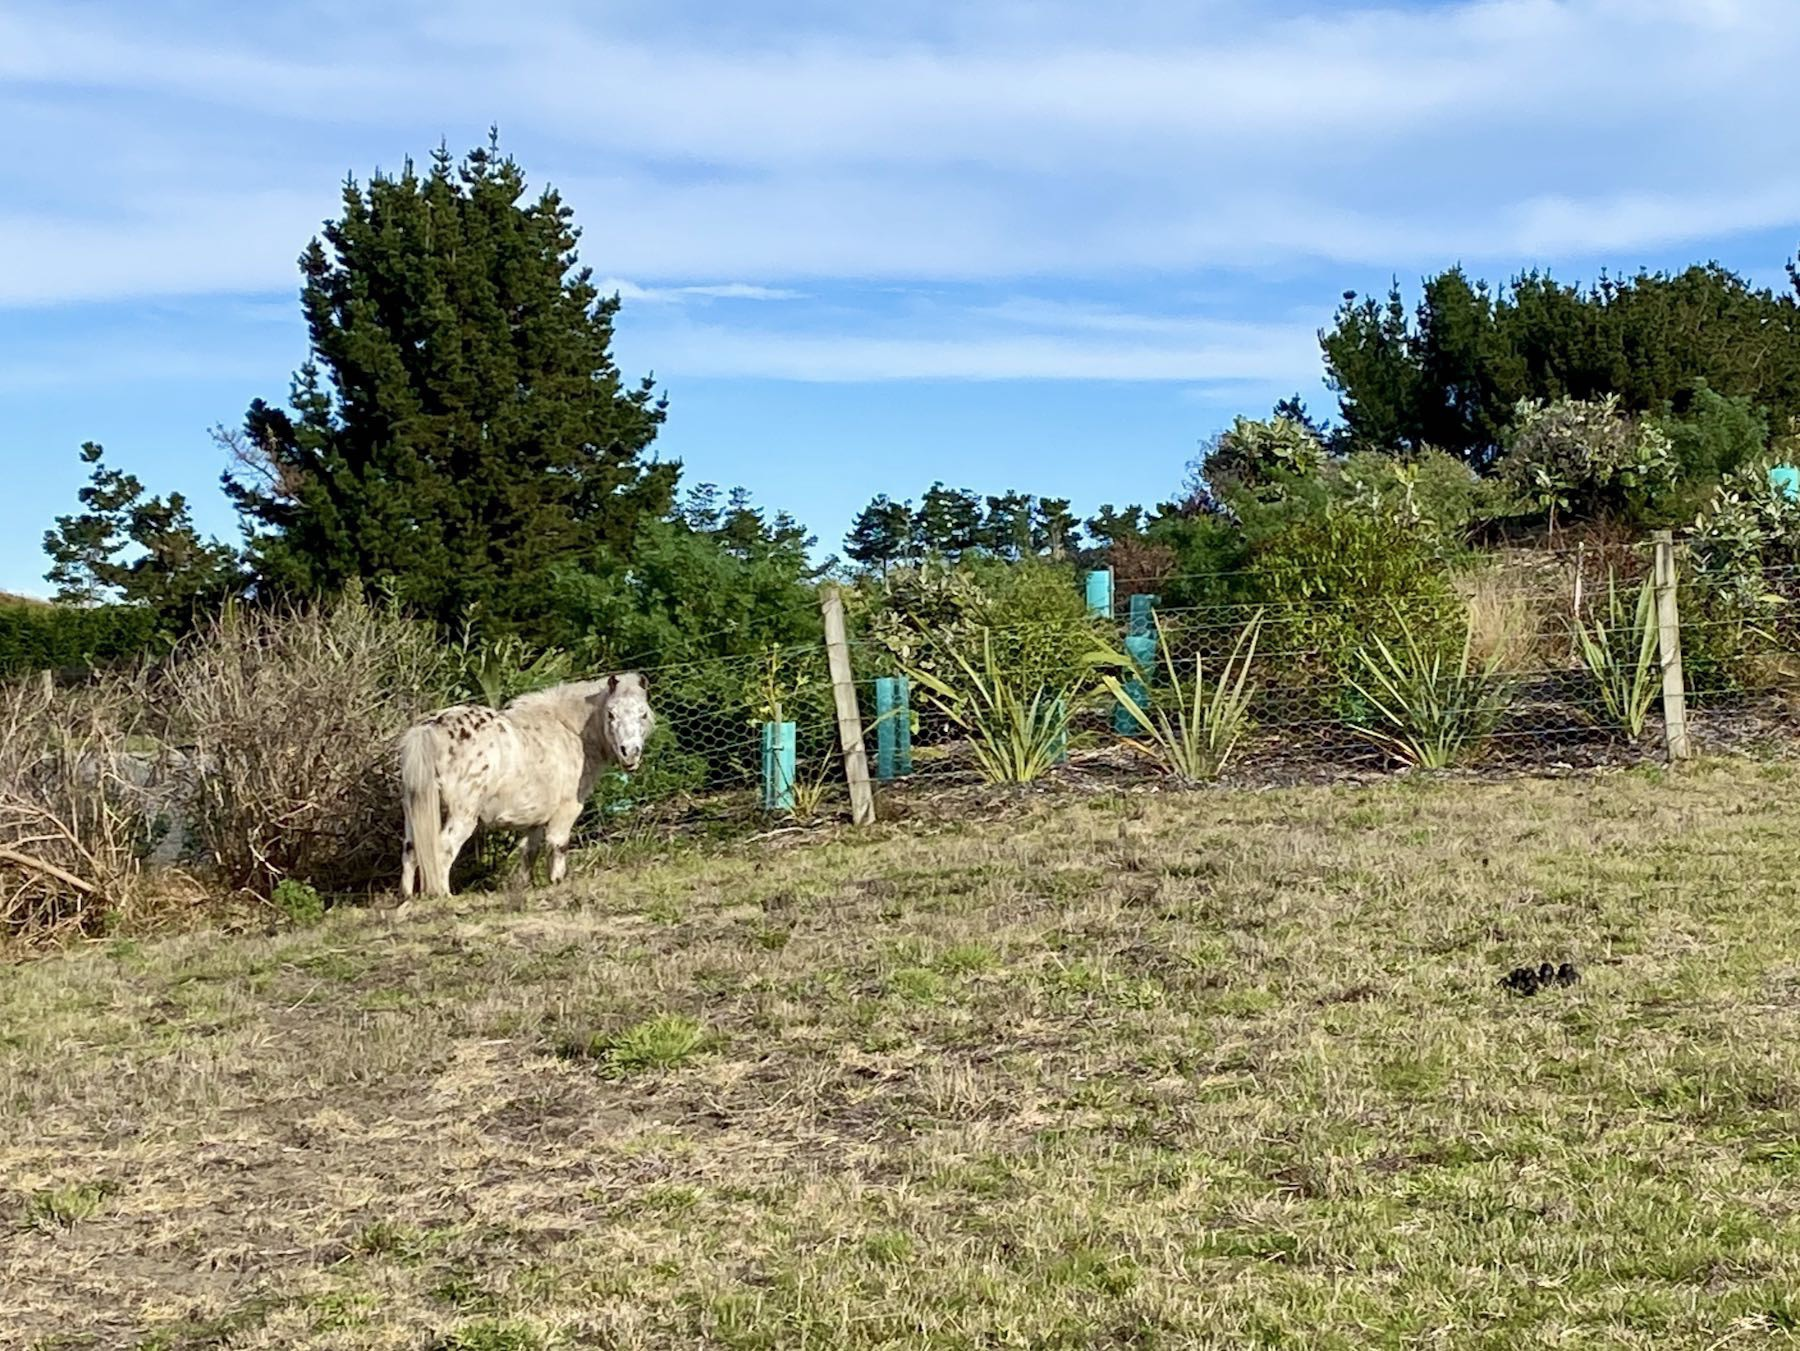 Spotted and white miniature horse grazing in a paddock.